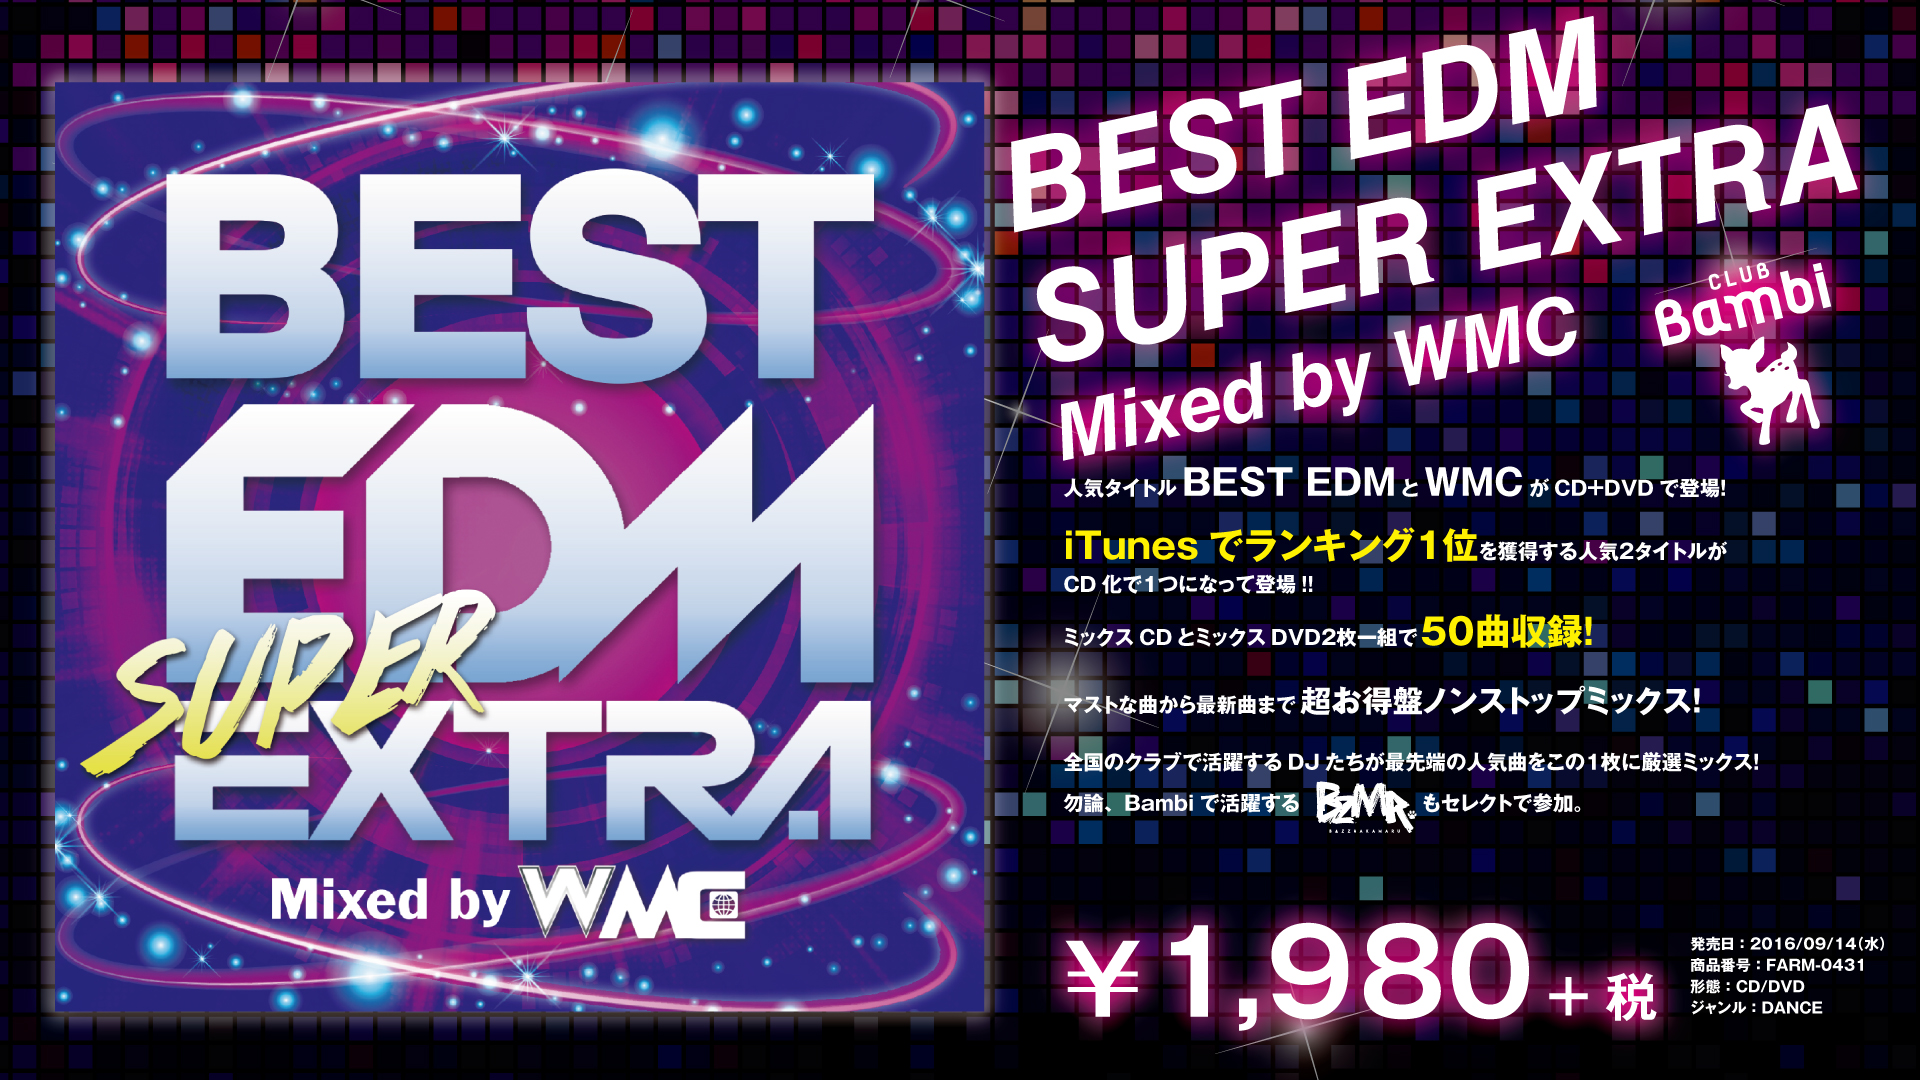 BEST EDM SUPER EXTRA Mixed by WMC